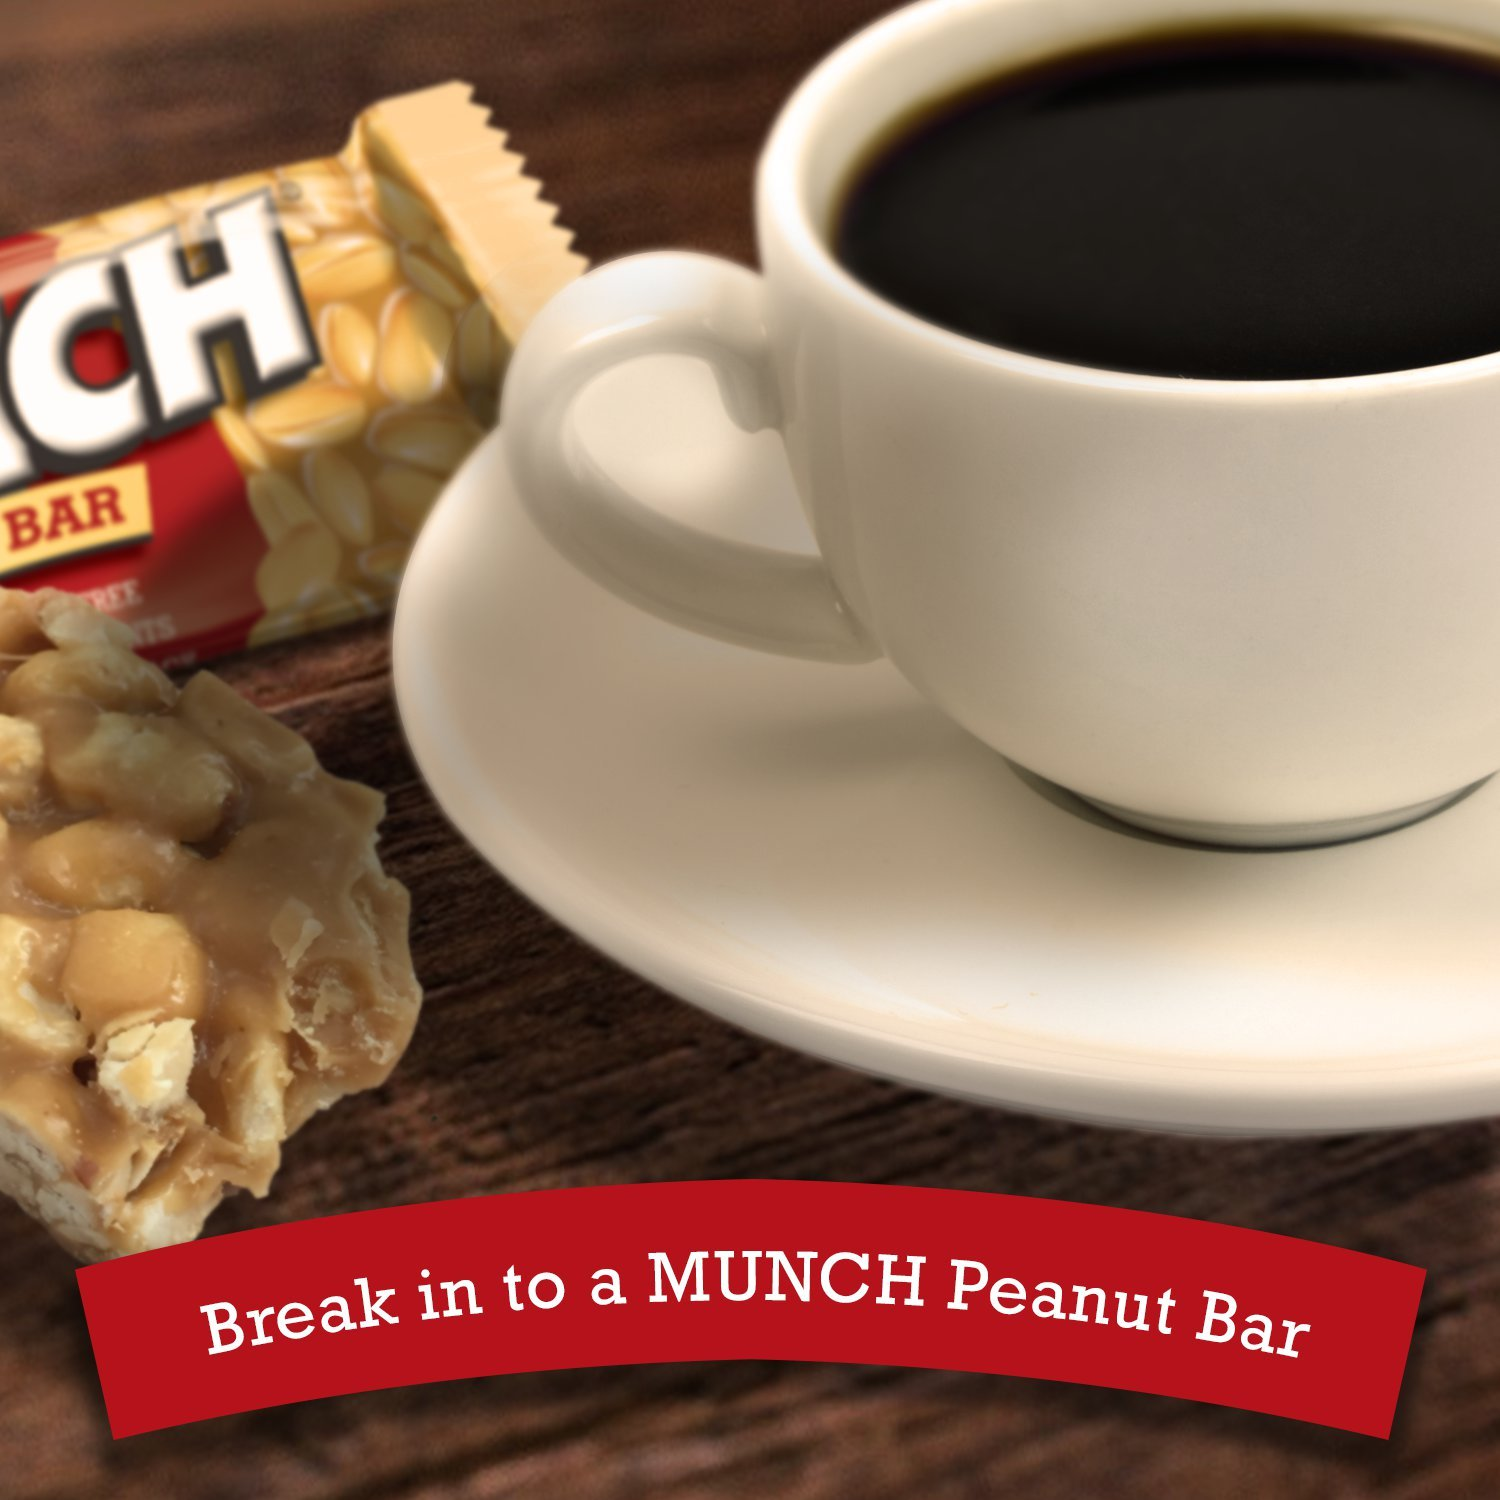 MUNCH Peanut Bar Singles Size 1.42-Ounce Bar 36-Count Box by Munch (Image #5)